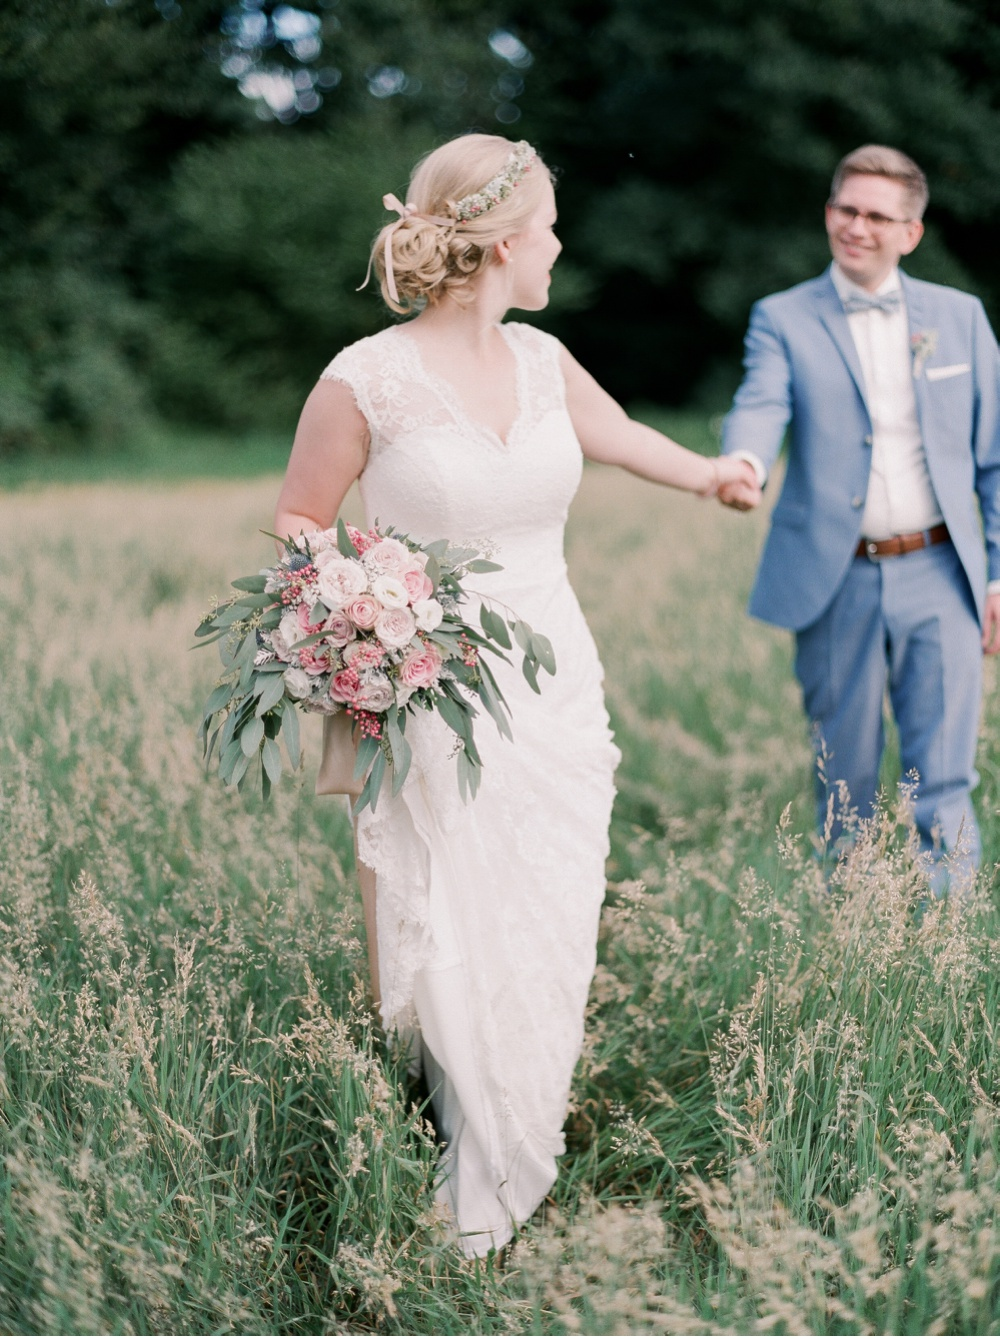 Paris_Provence_Destination_Wedding_Photographer©MadalinaSheldon_0071.jpg